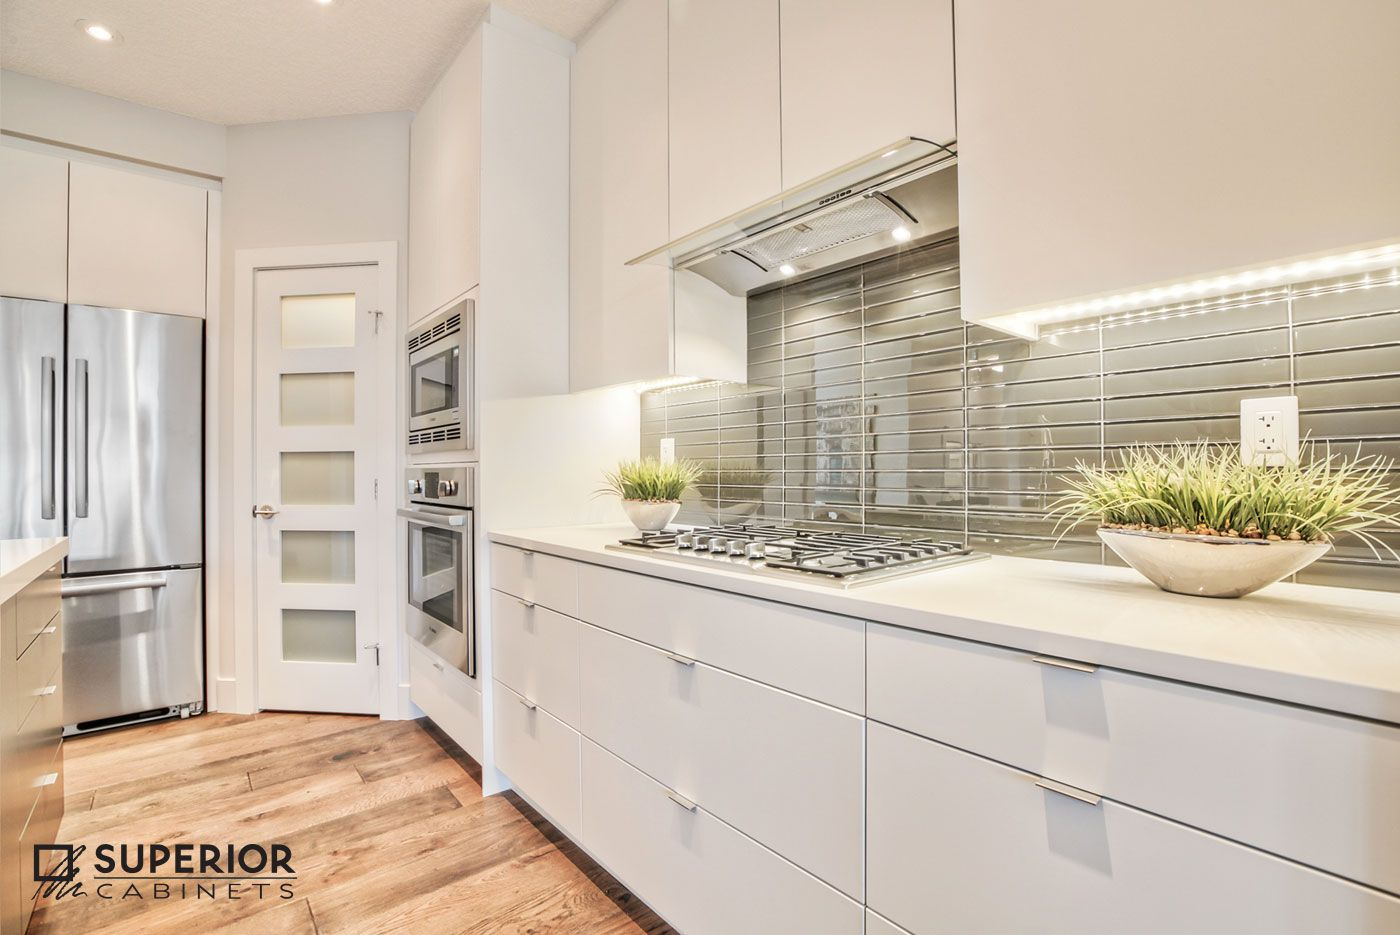 Designer Jasmine Larre Superior Cabinets Calgary Builder Treehouse Developments Calgary Finish Fusion Pro Superior Cabinets Kitchen Design Kitchen Photos